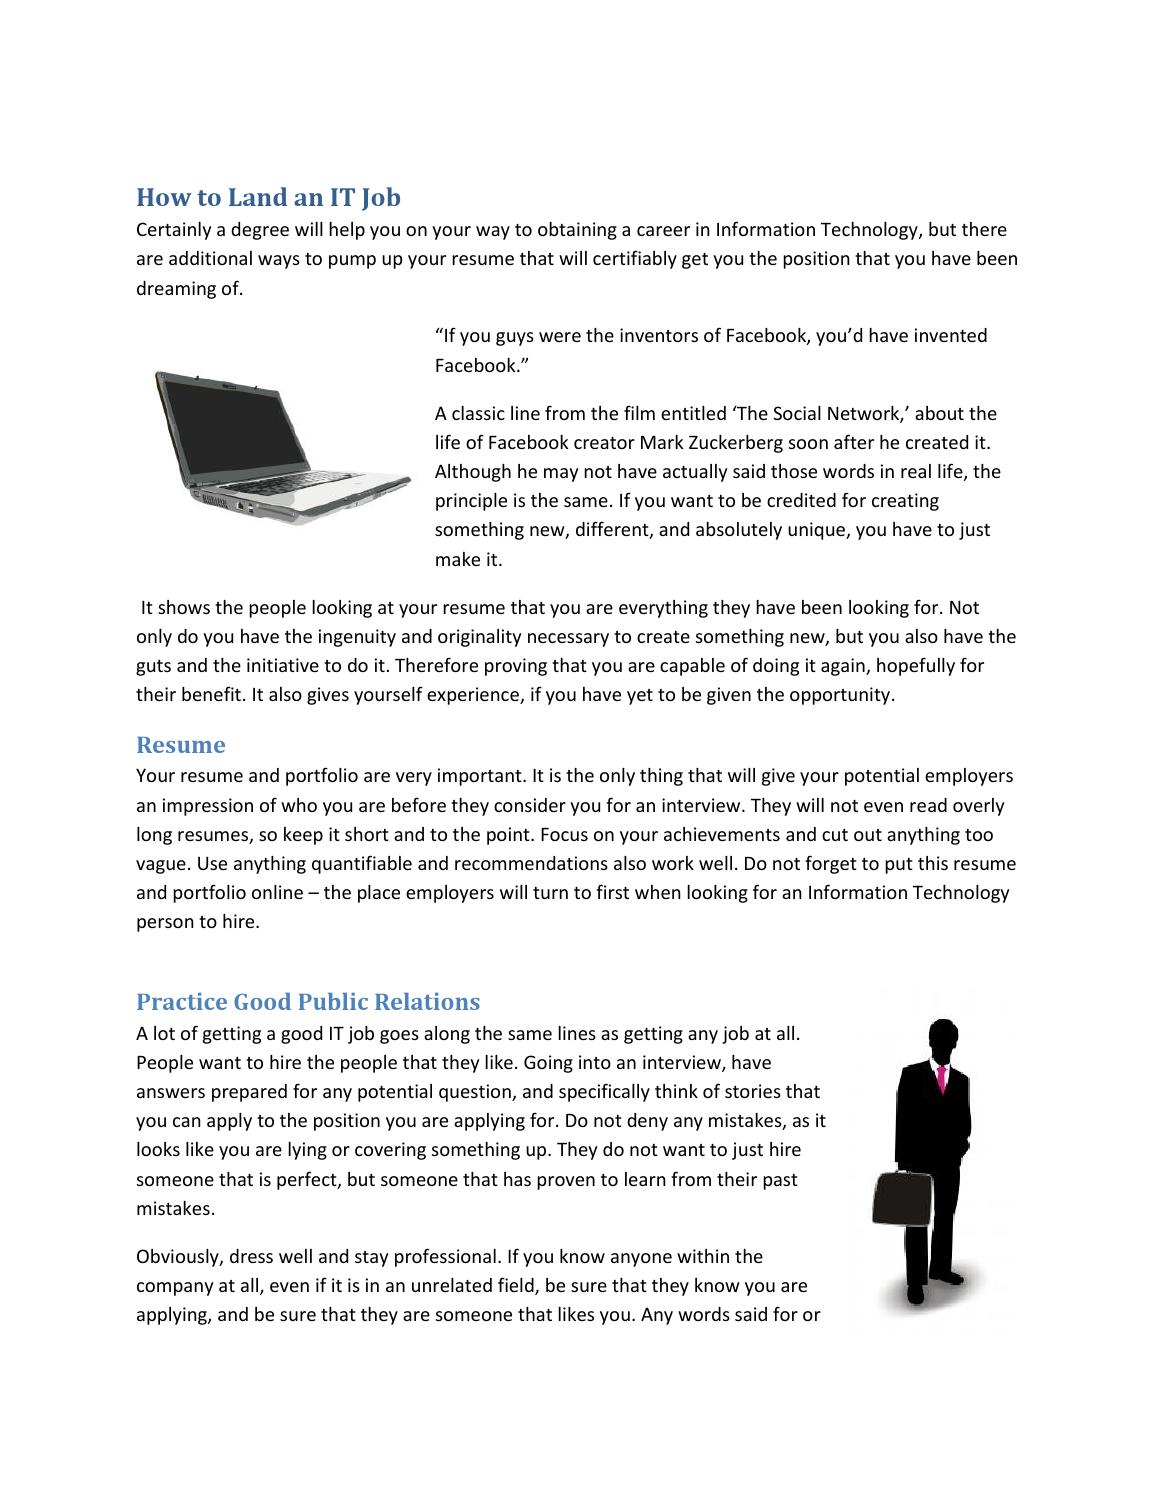 How To Land An It Job By Donald Quixote Issuu